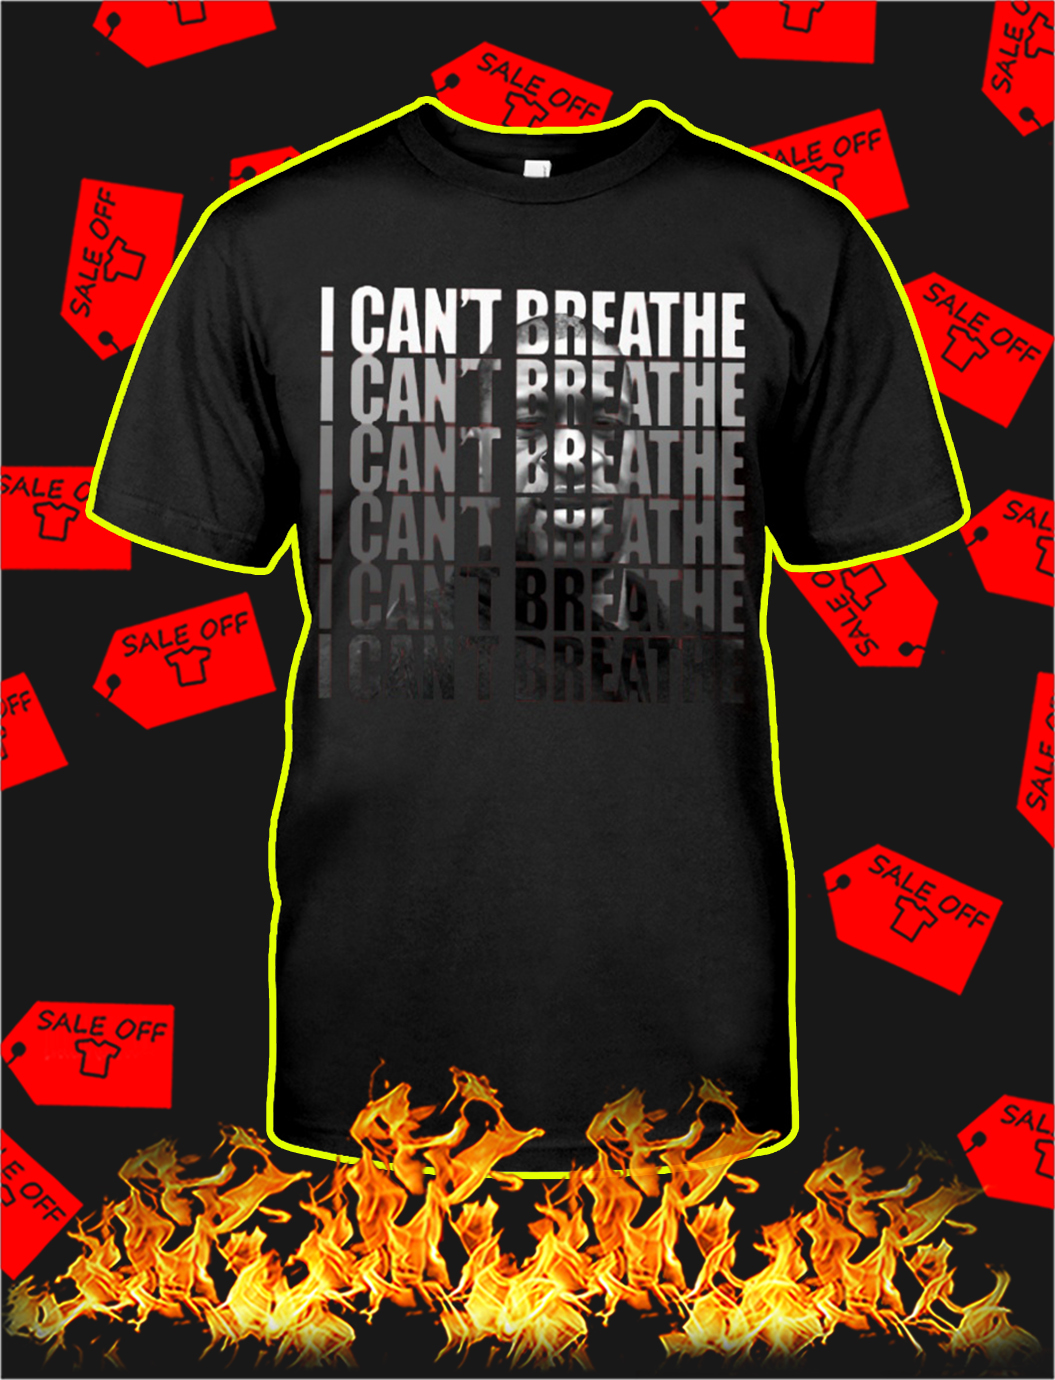 I can't breathe i can't breathe shirt